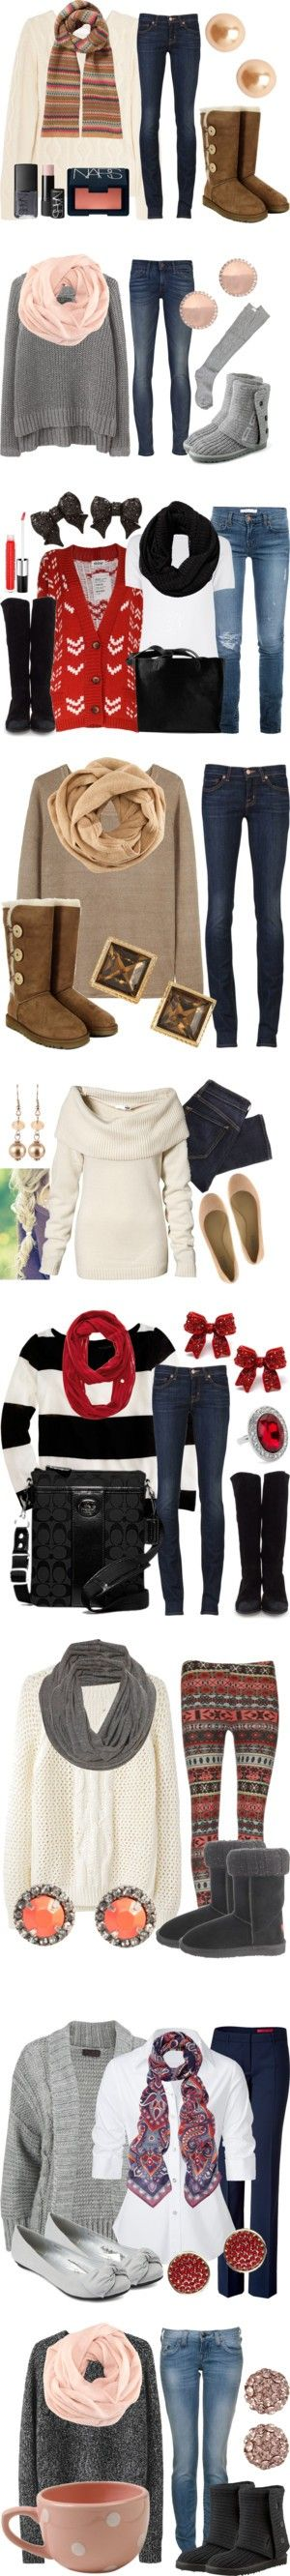 fall outfitsWinter Wardrobes, Sweaters Weather, Fall Winte, Fall Outfits, Winter Outfits, Cozy Outfit, Cute Outfit, Dreams Closets, Cold Weather